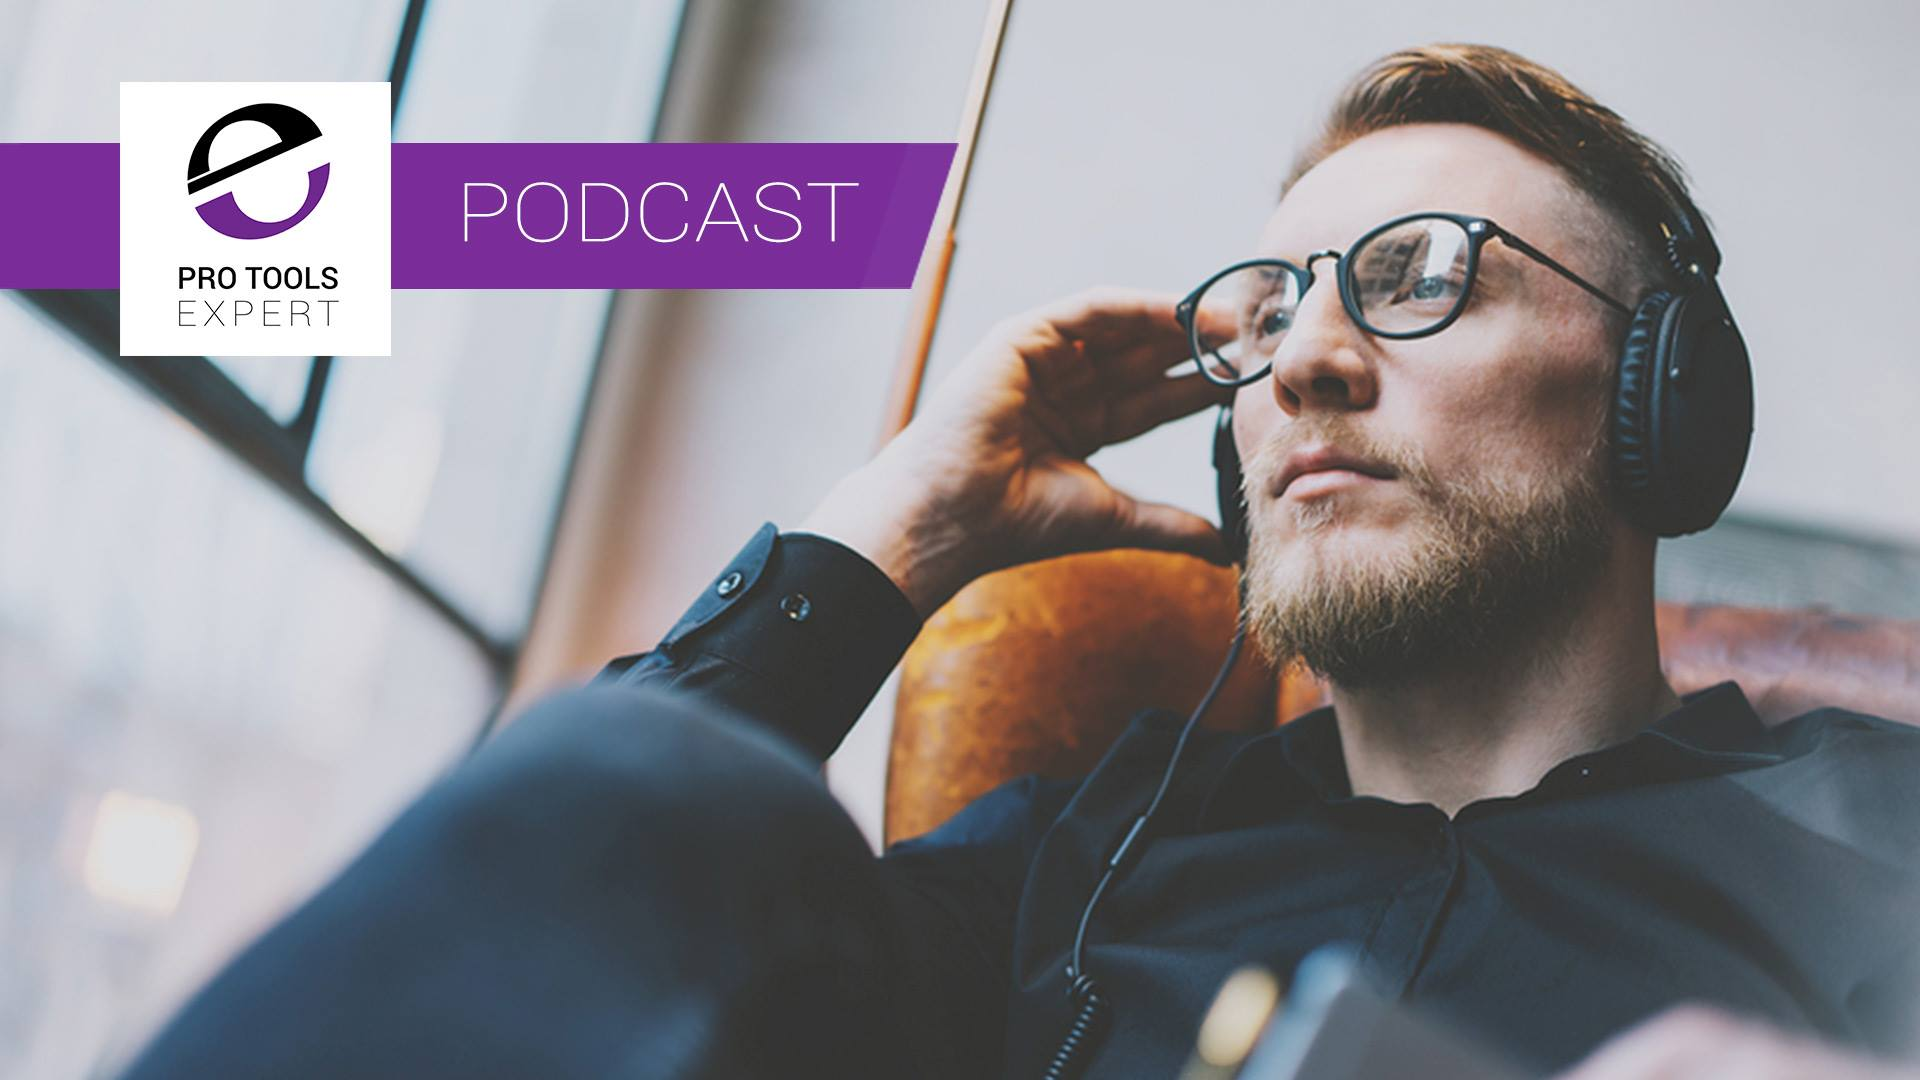 Pro Tools Expert Podcast Episode 259